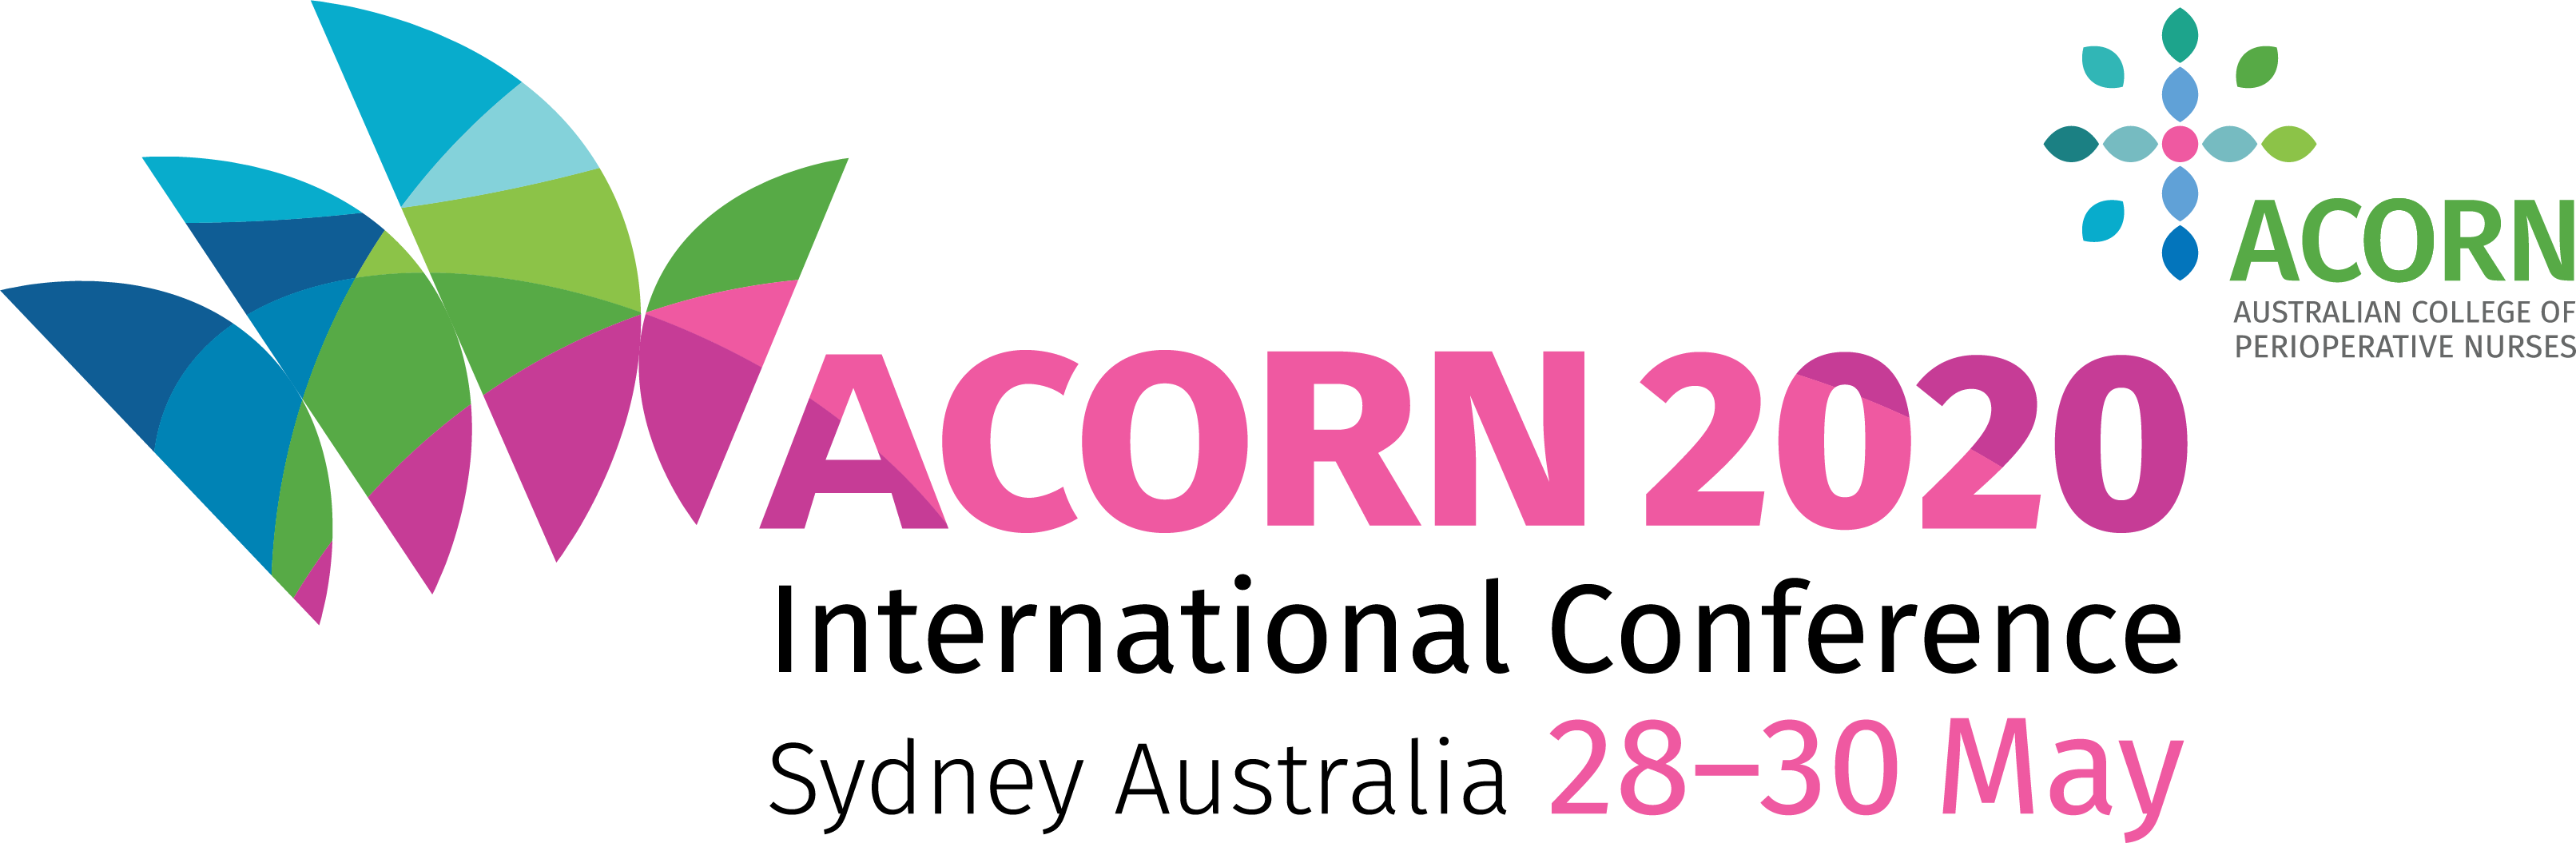 It is now just a few months until our biggest event begins. We warmly invite you to join us at the ACORN 2020 International Conference, the largest gathering of perioperative nurses in the southern hemisphere. Theme | Vision for the future Where | International Convention Centre (ICC), Sydney When | 28–30 May 2020. REGISTER NOW